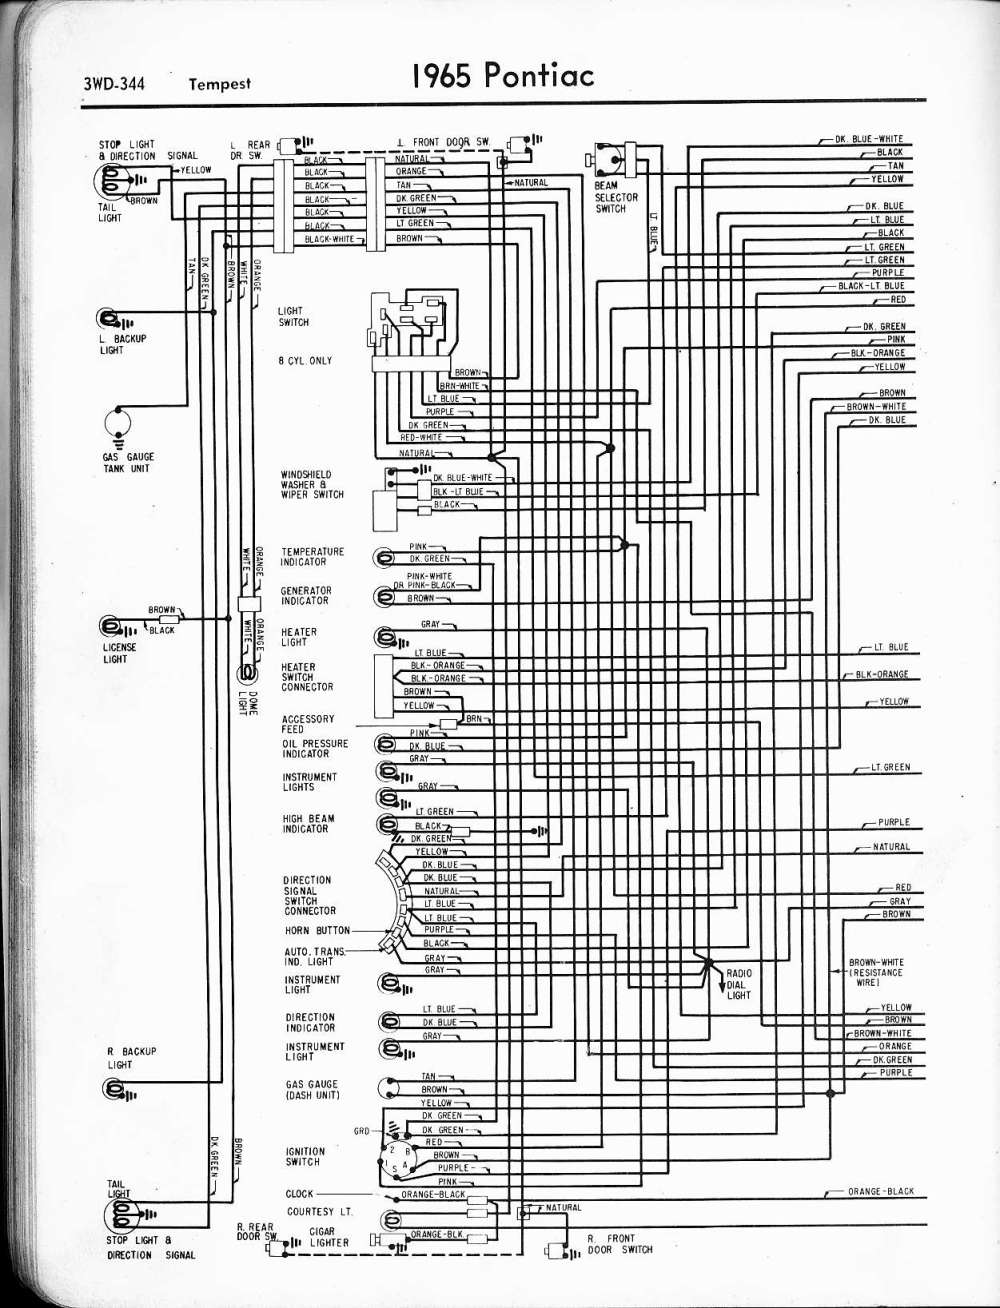 medium resolution of 65 pontiac wiring diagram electrical wiring diagrams rh 25 lowrysdriedmeat de 2003 pontiac bonneville sse diagram of 3800 pontiac engine